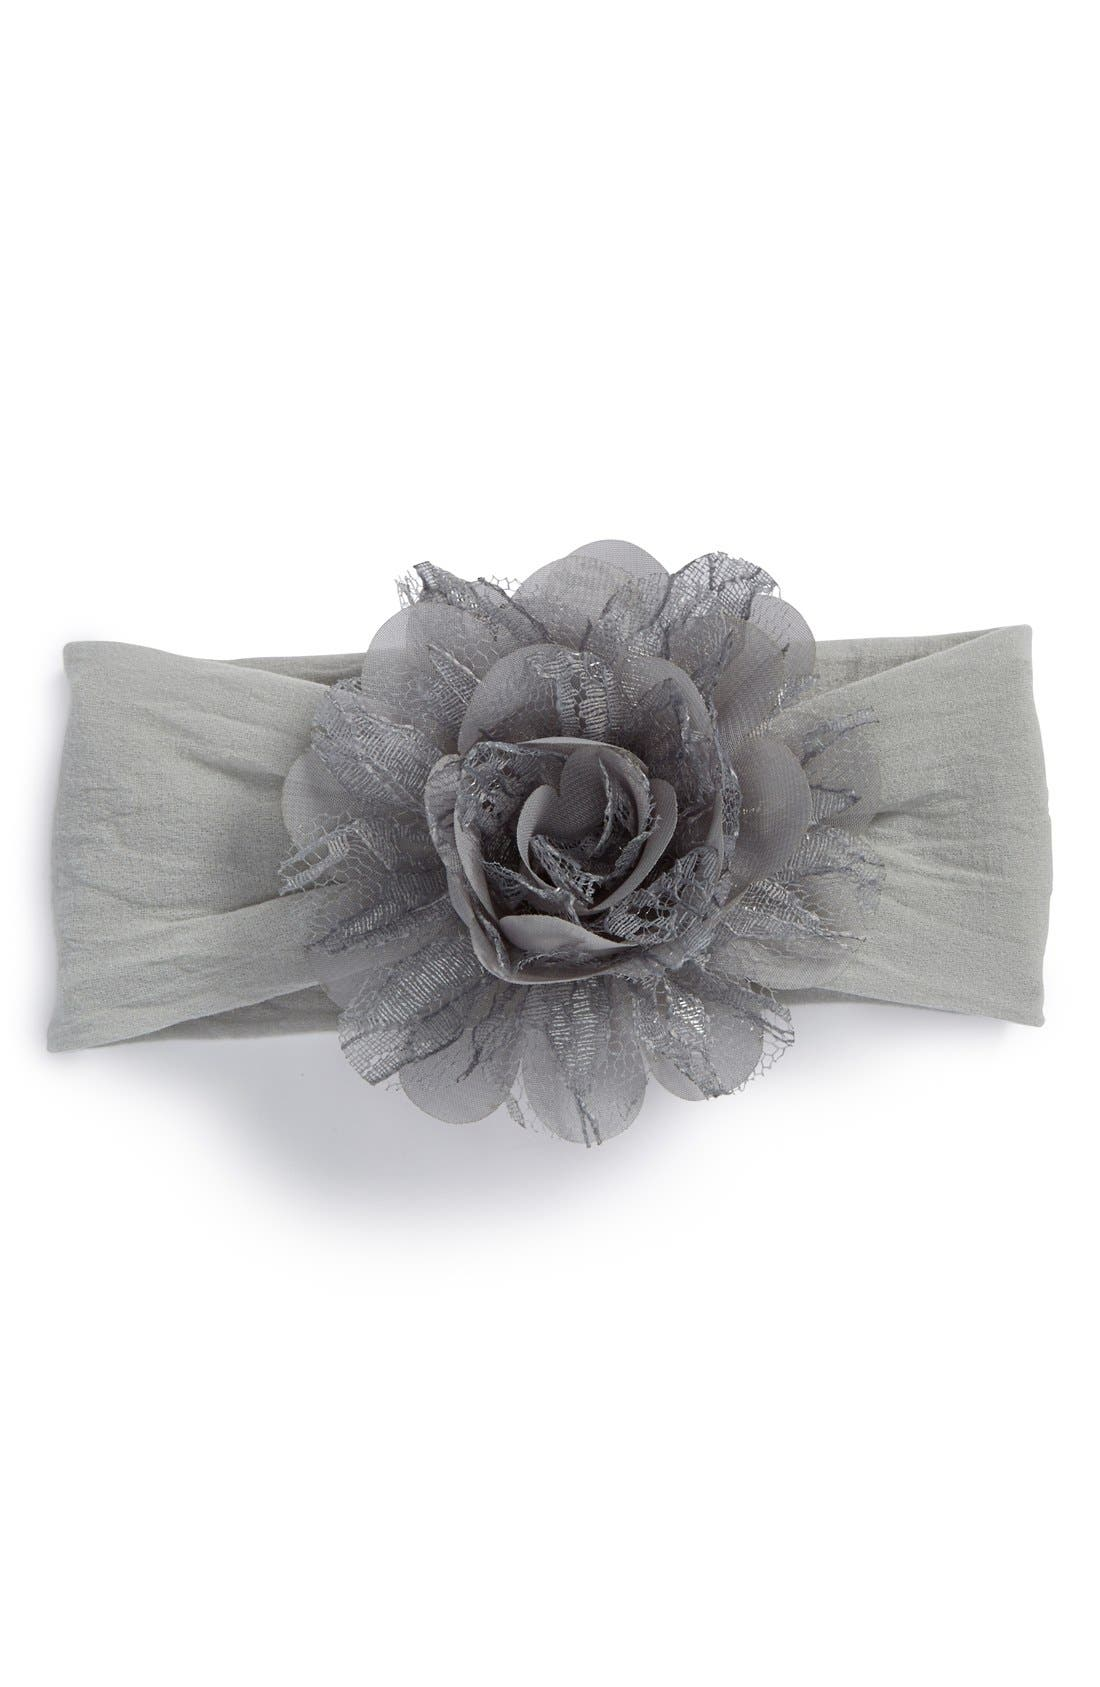 Alternate Image 1 Selected - Baby Bling Lace & Chiffon Flower Headband (Baby Girls)